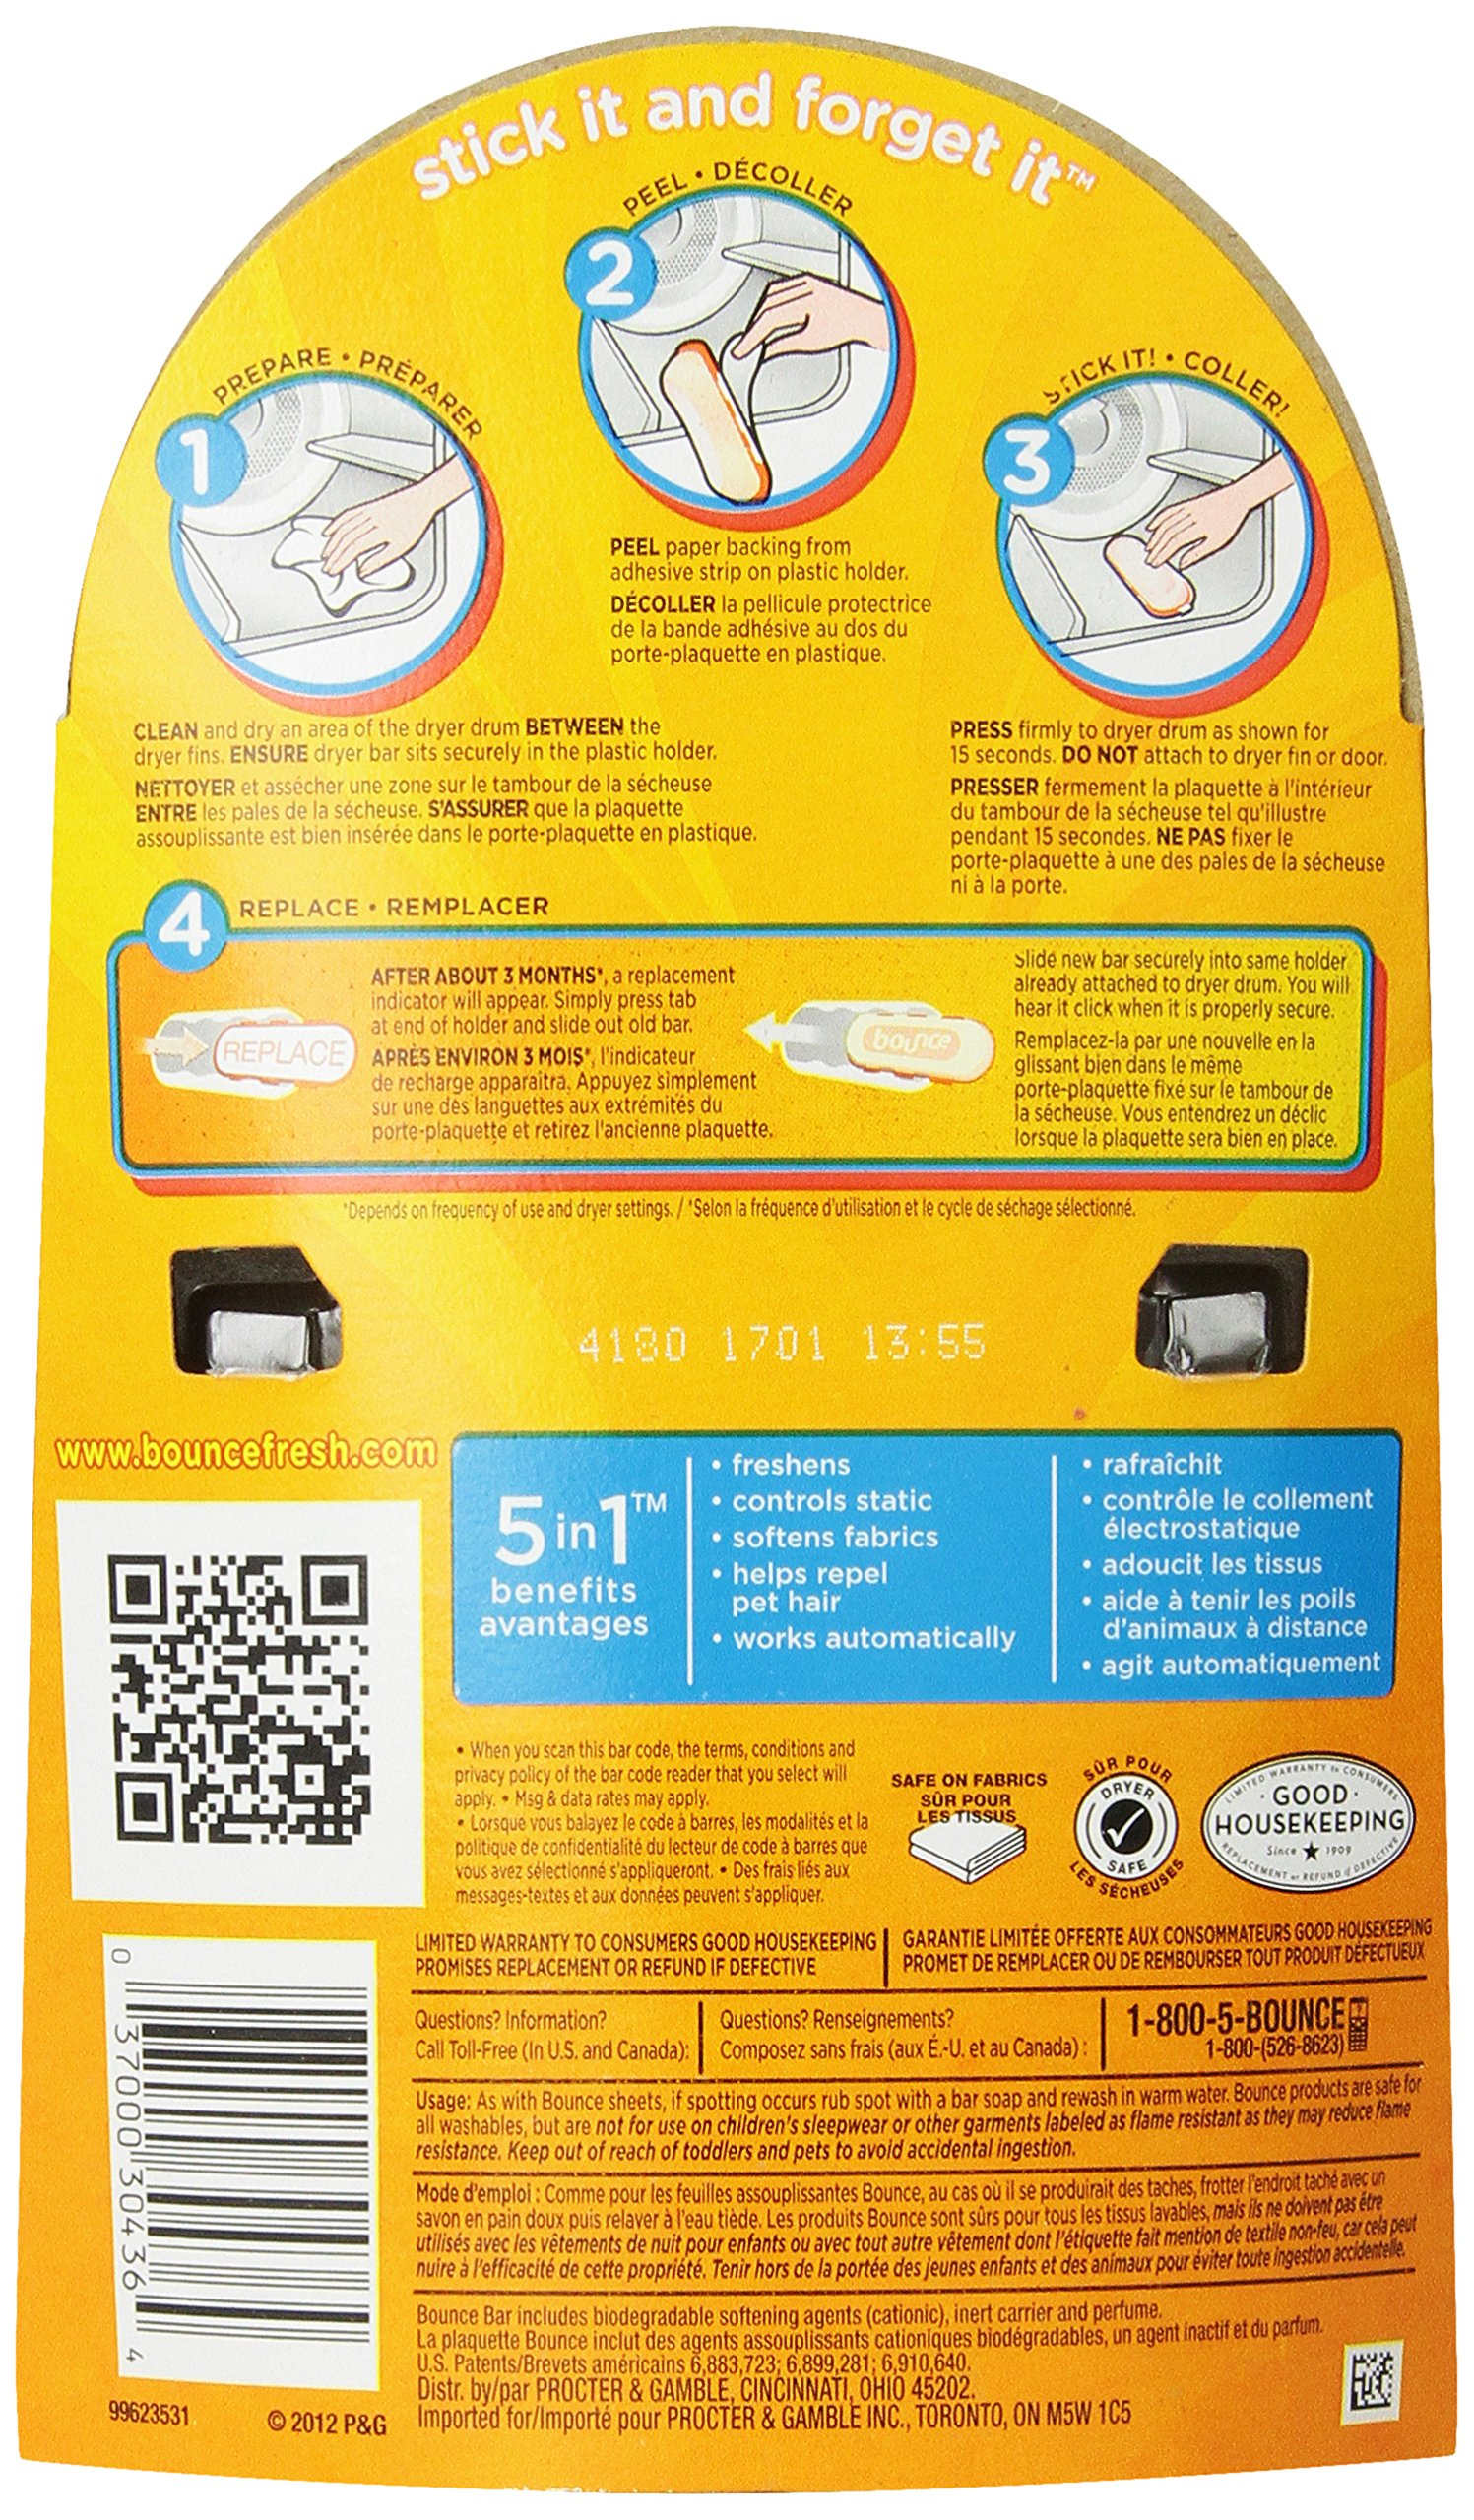 Bounce 3 Month Outdoor Fresh Dryer Bar 1.92 Oz by Bounce (Image #2)